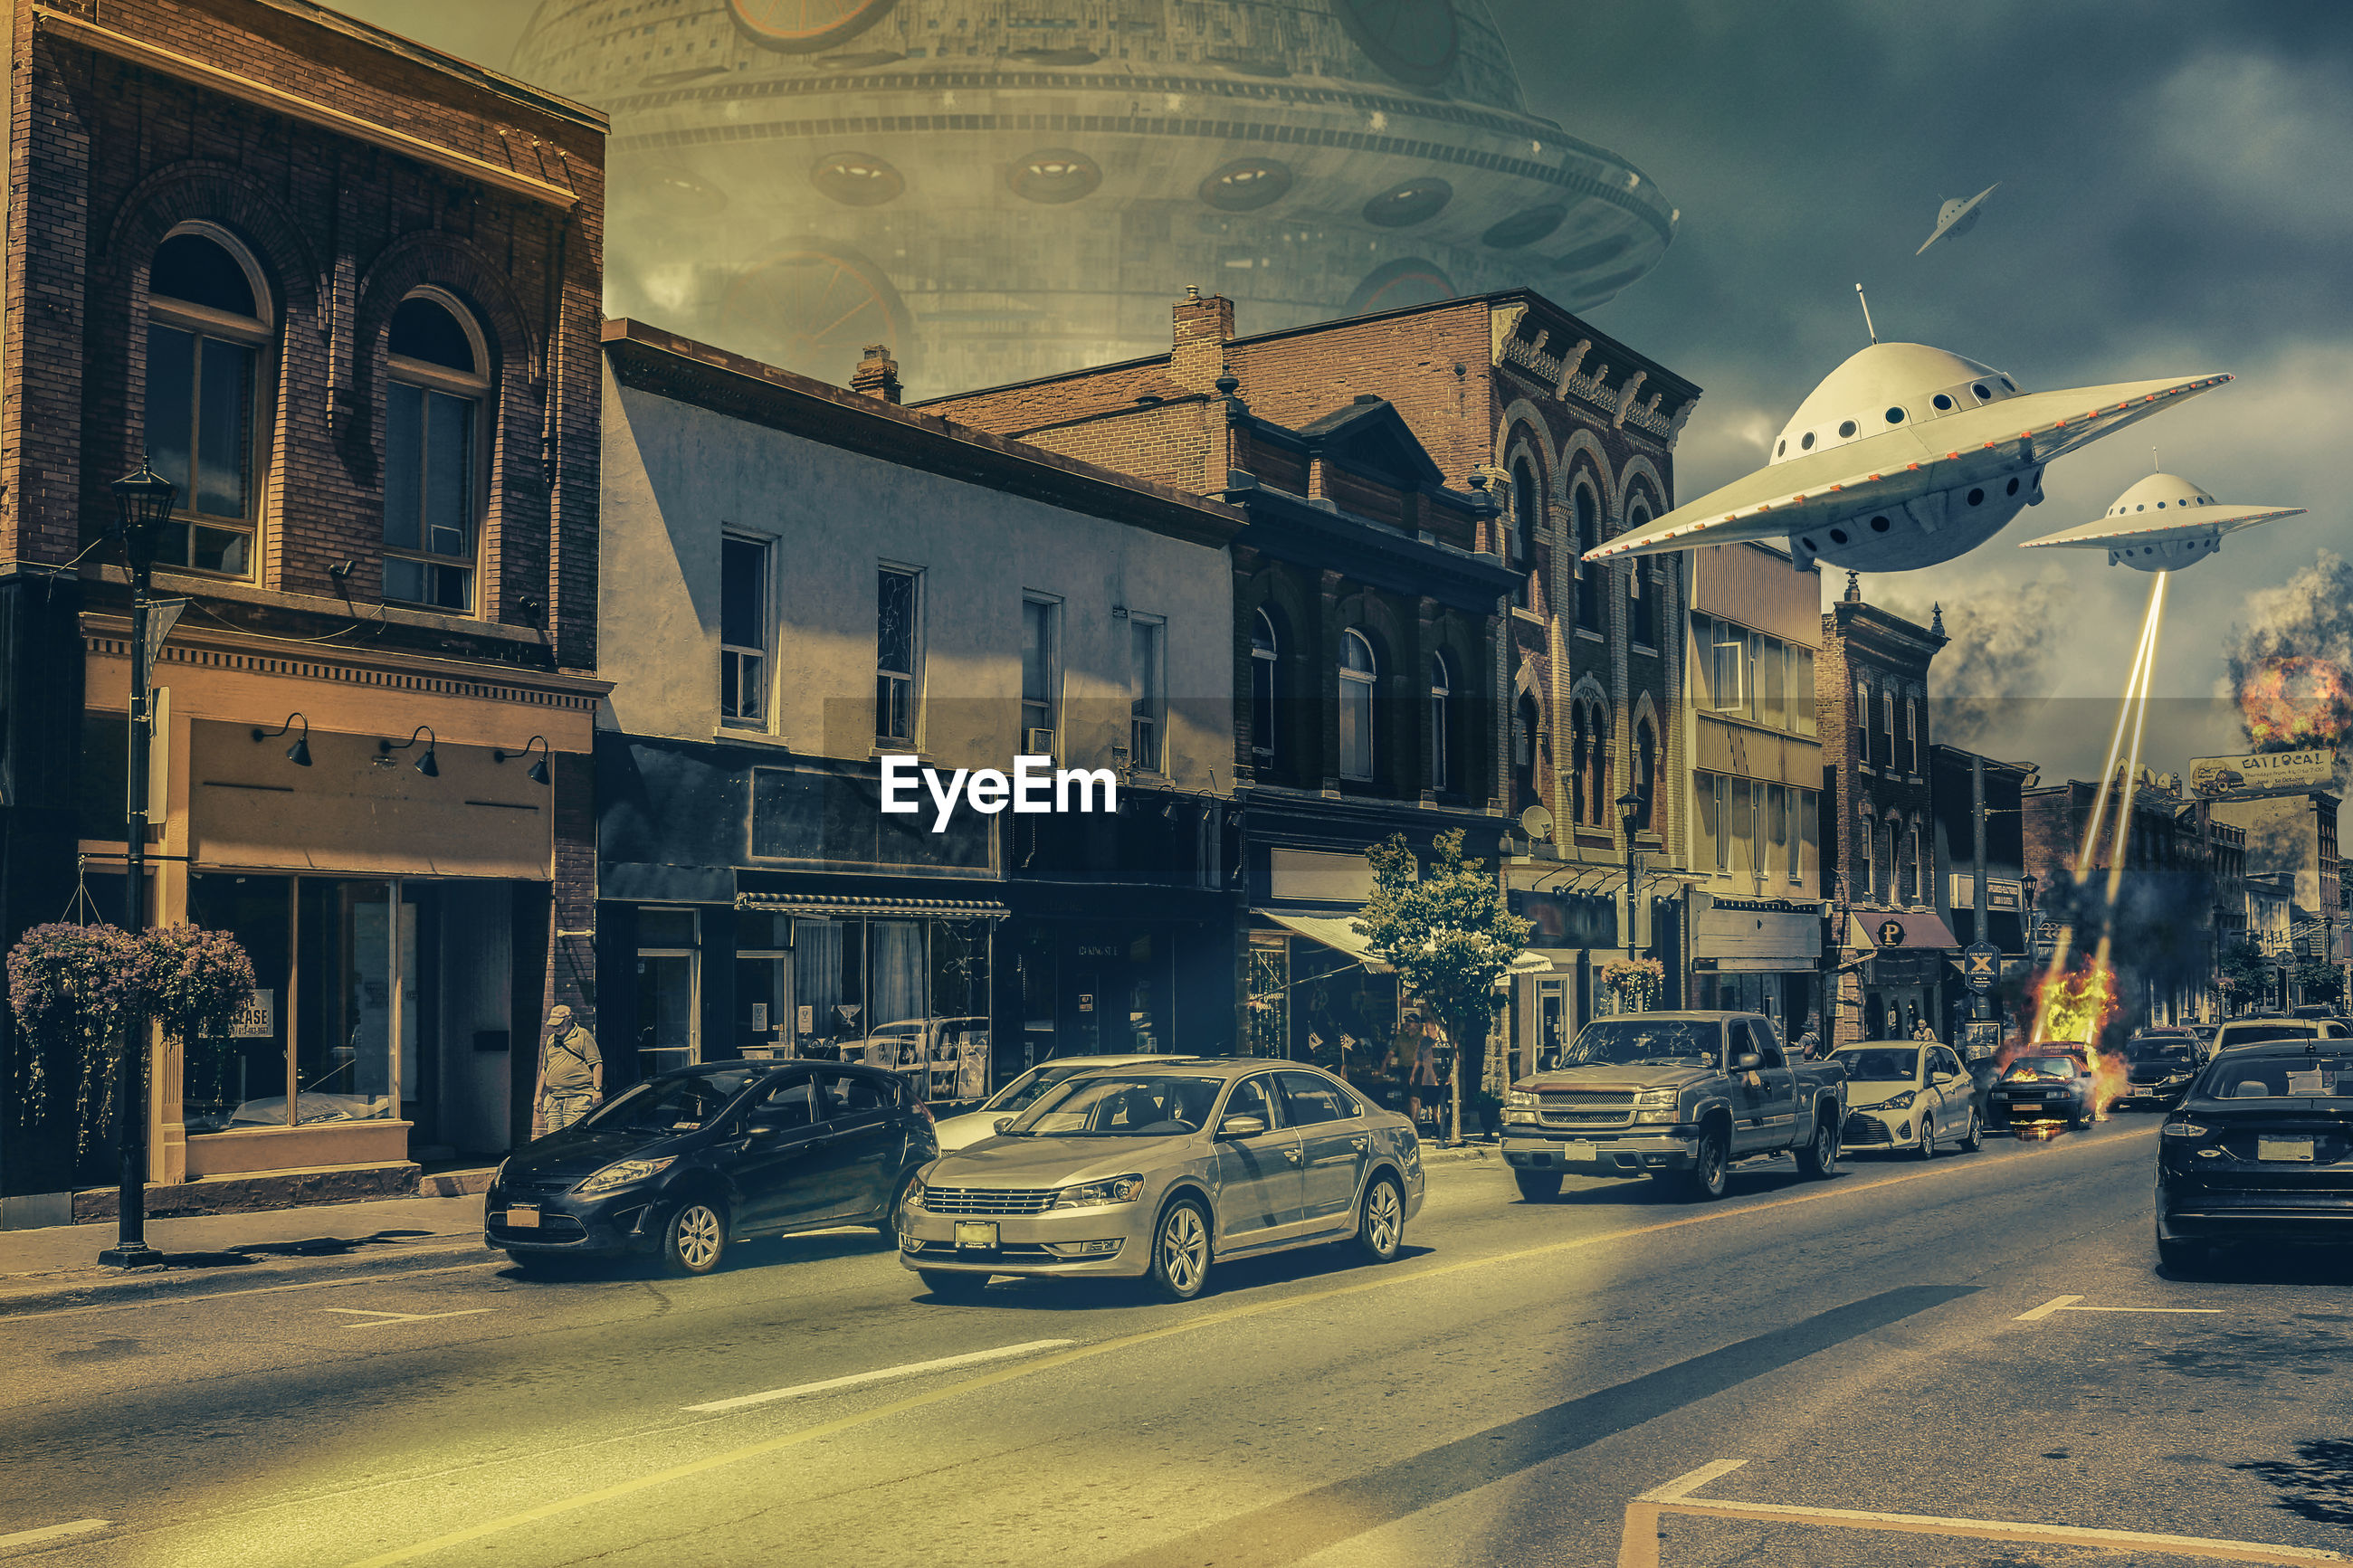 Digital composite image of ufo attacking buildings and cars on in city